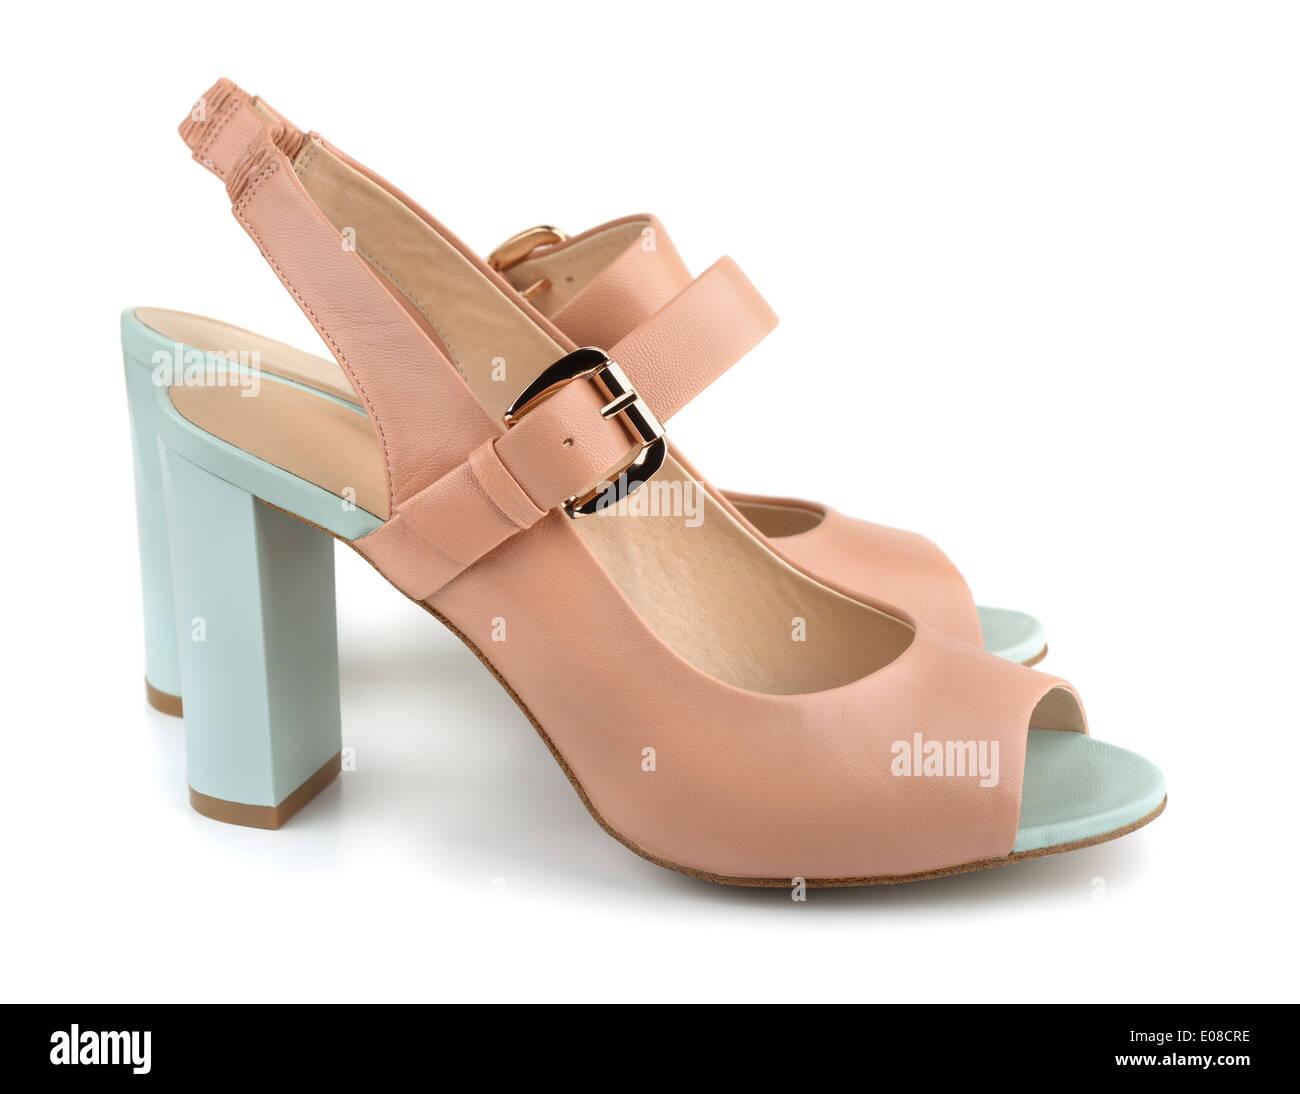 Paire de chaussures à talons hauts beige isolated on white Photo Stock